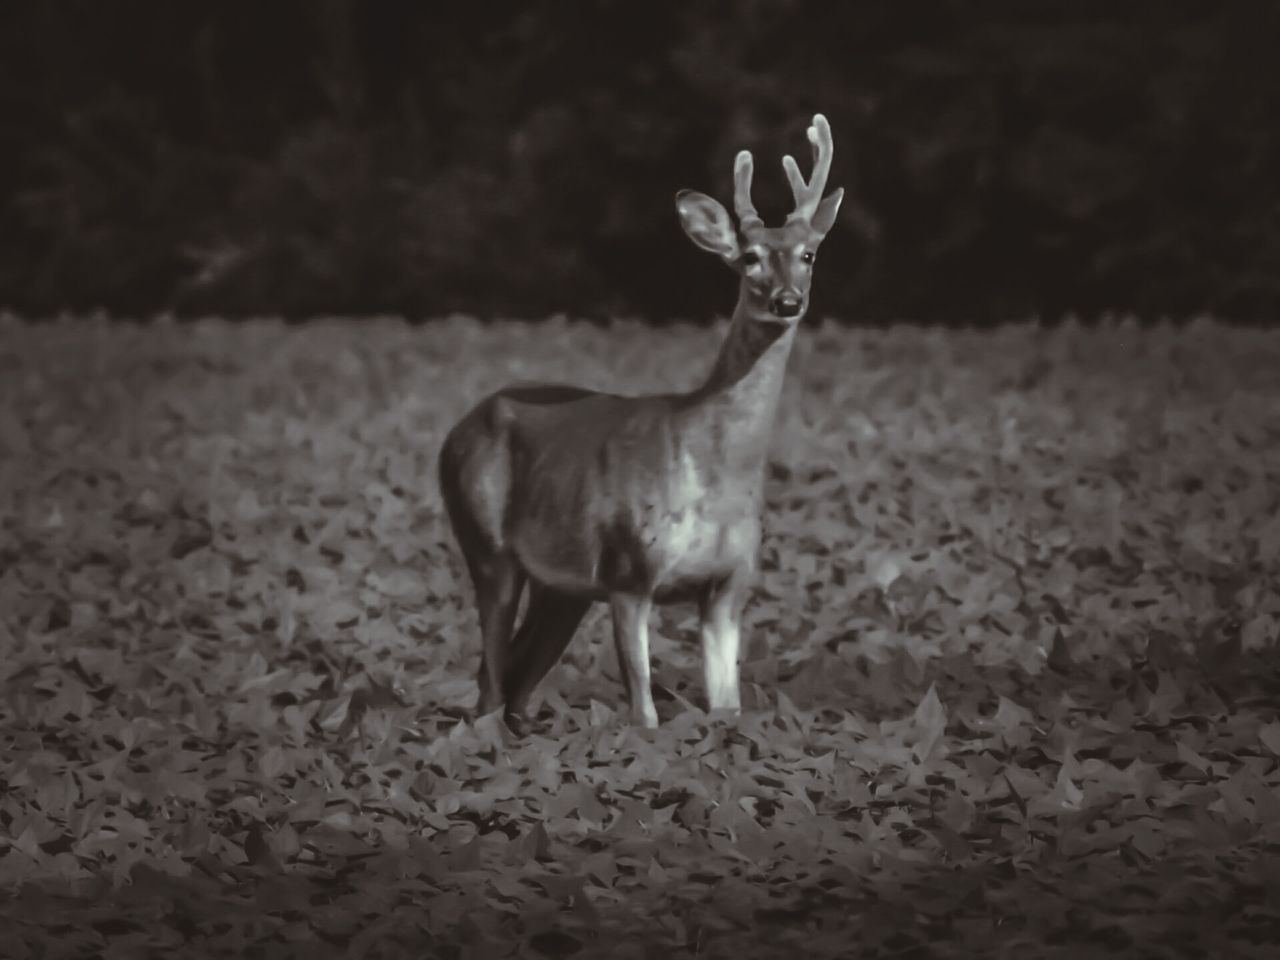 Deer Buck Antler Animals In The Wild Nature Outdoors Mammal One Animal Animal ThemesbBlack & White Black And White Photography Blackandwhite Animals In The Wild Animal Wildlife Animalphotography Animal_collection Animal Lover Gray And White Deer ♥♥ Deersighting Deers Nature Beauty Peace